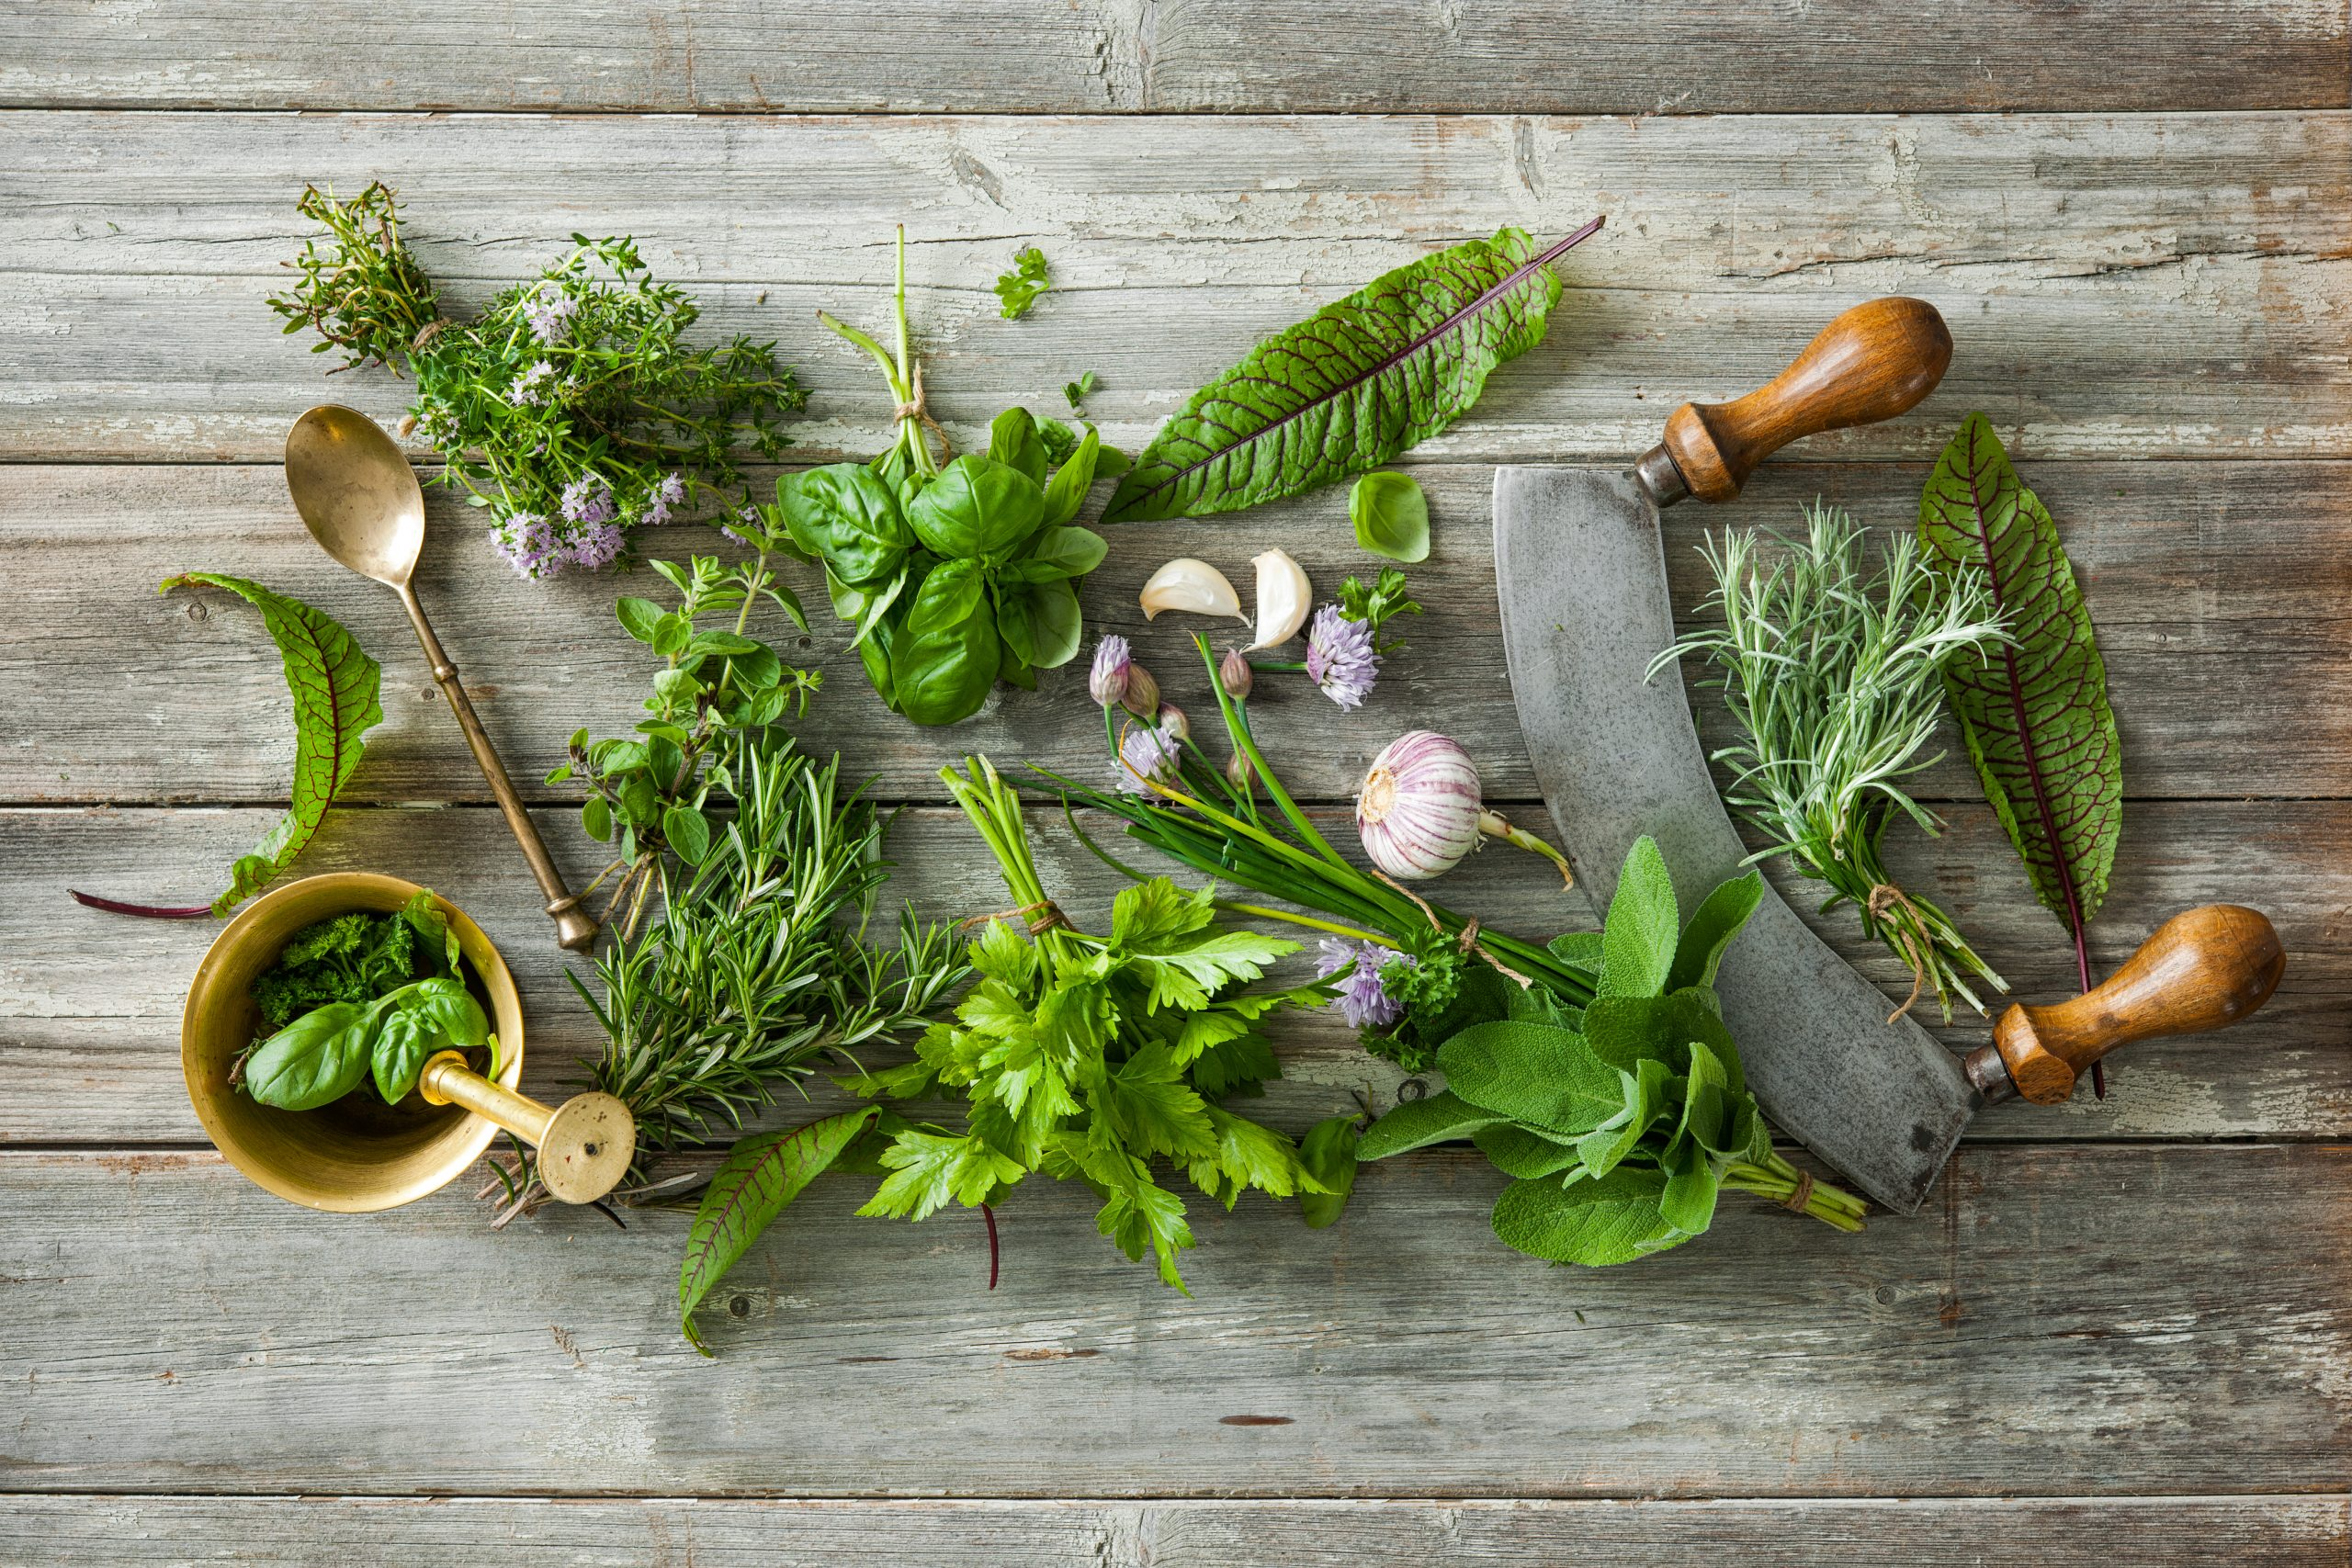 Fresh herbs: How to use them and preserve them